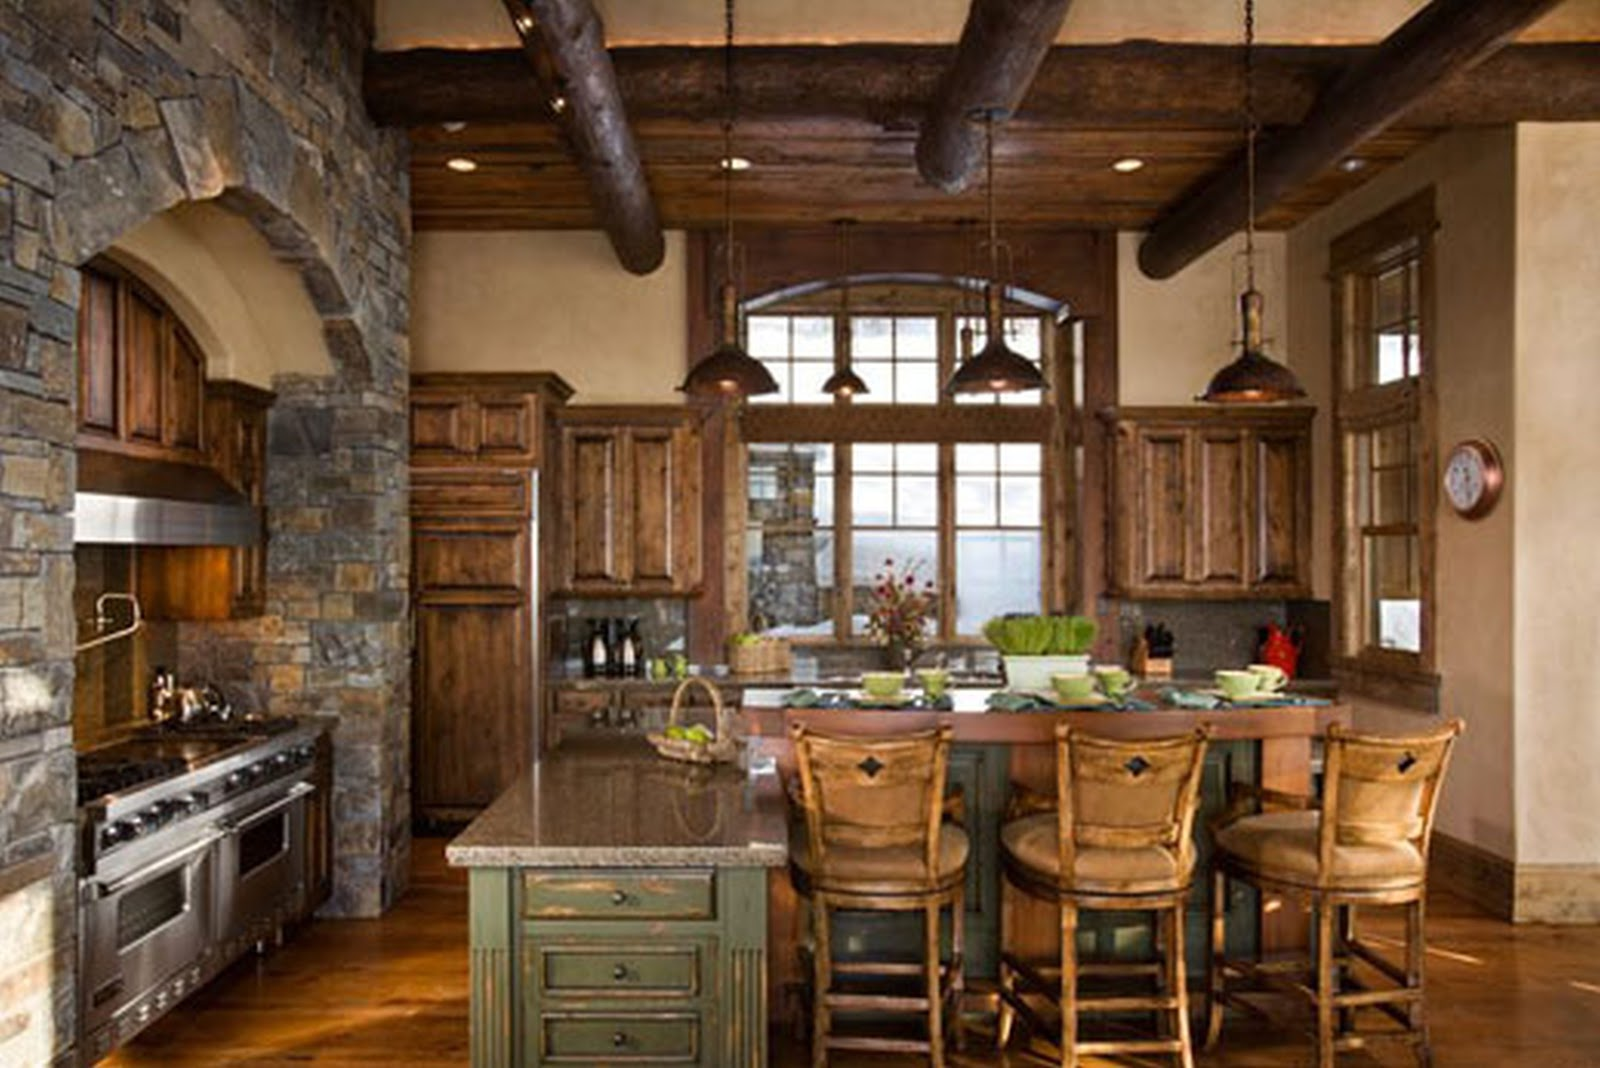 decoration-rustic-ceiling-beams-wooden-flooring-natural-stone-wall-decor-kitchen-island-plus-wood-modern-contemporary-decozt-photo-gallery-of-home-interior-design-kitchen-island-decor-with-lighting-styli.jpg